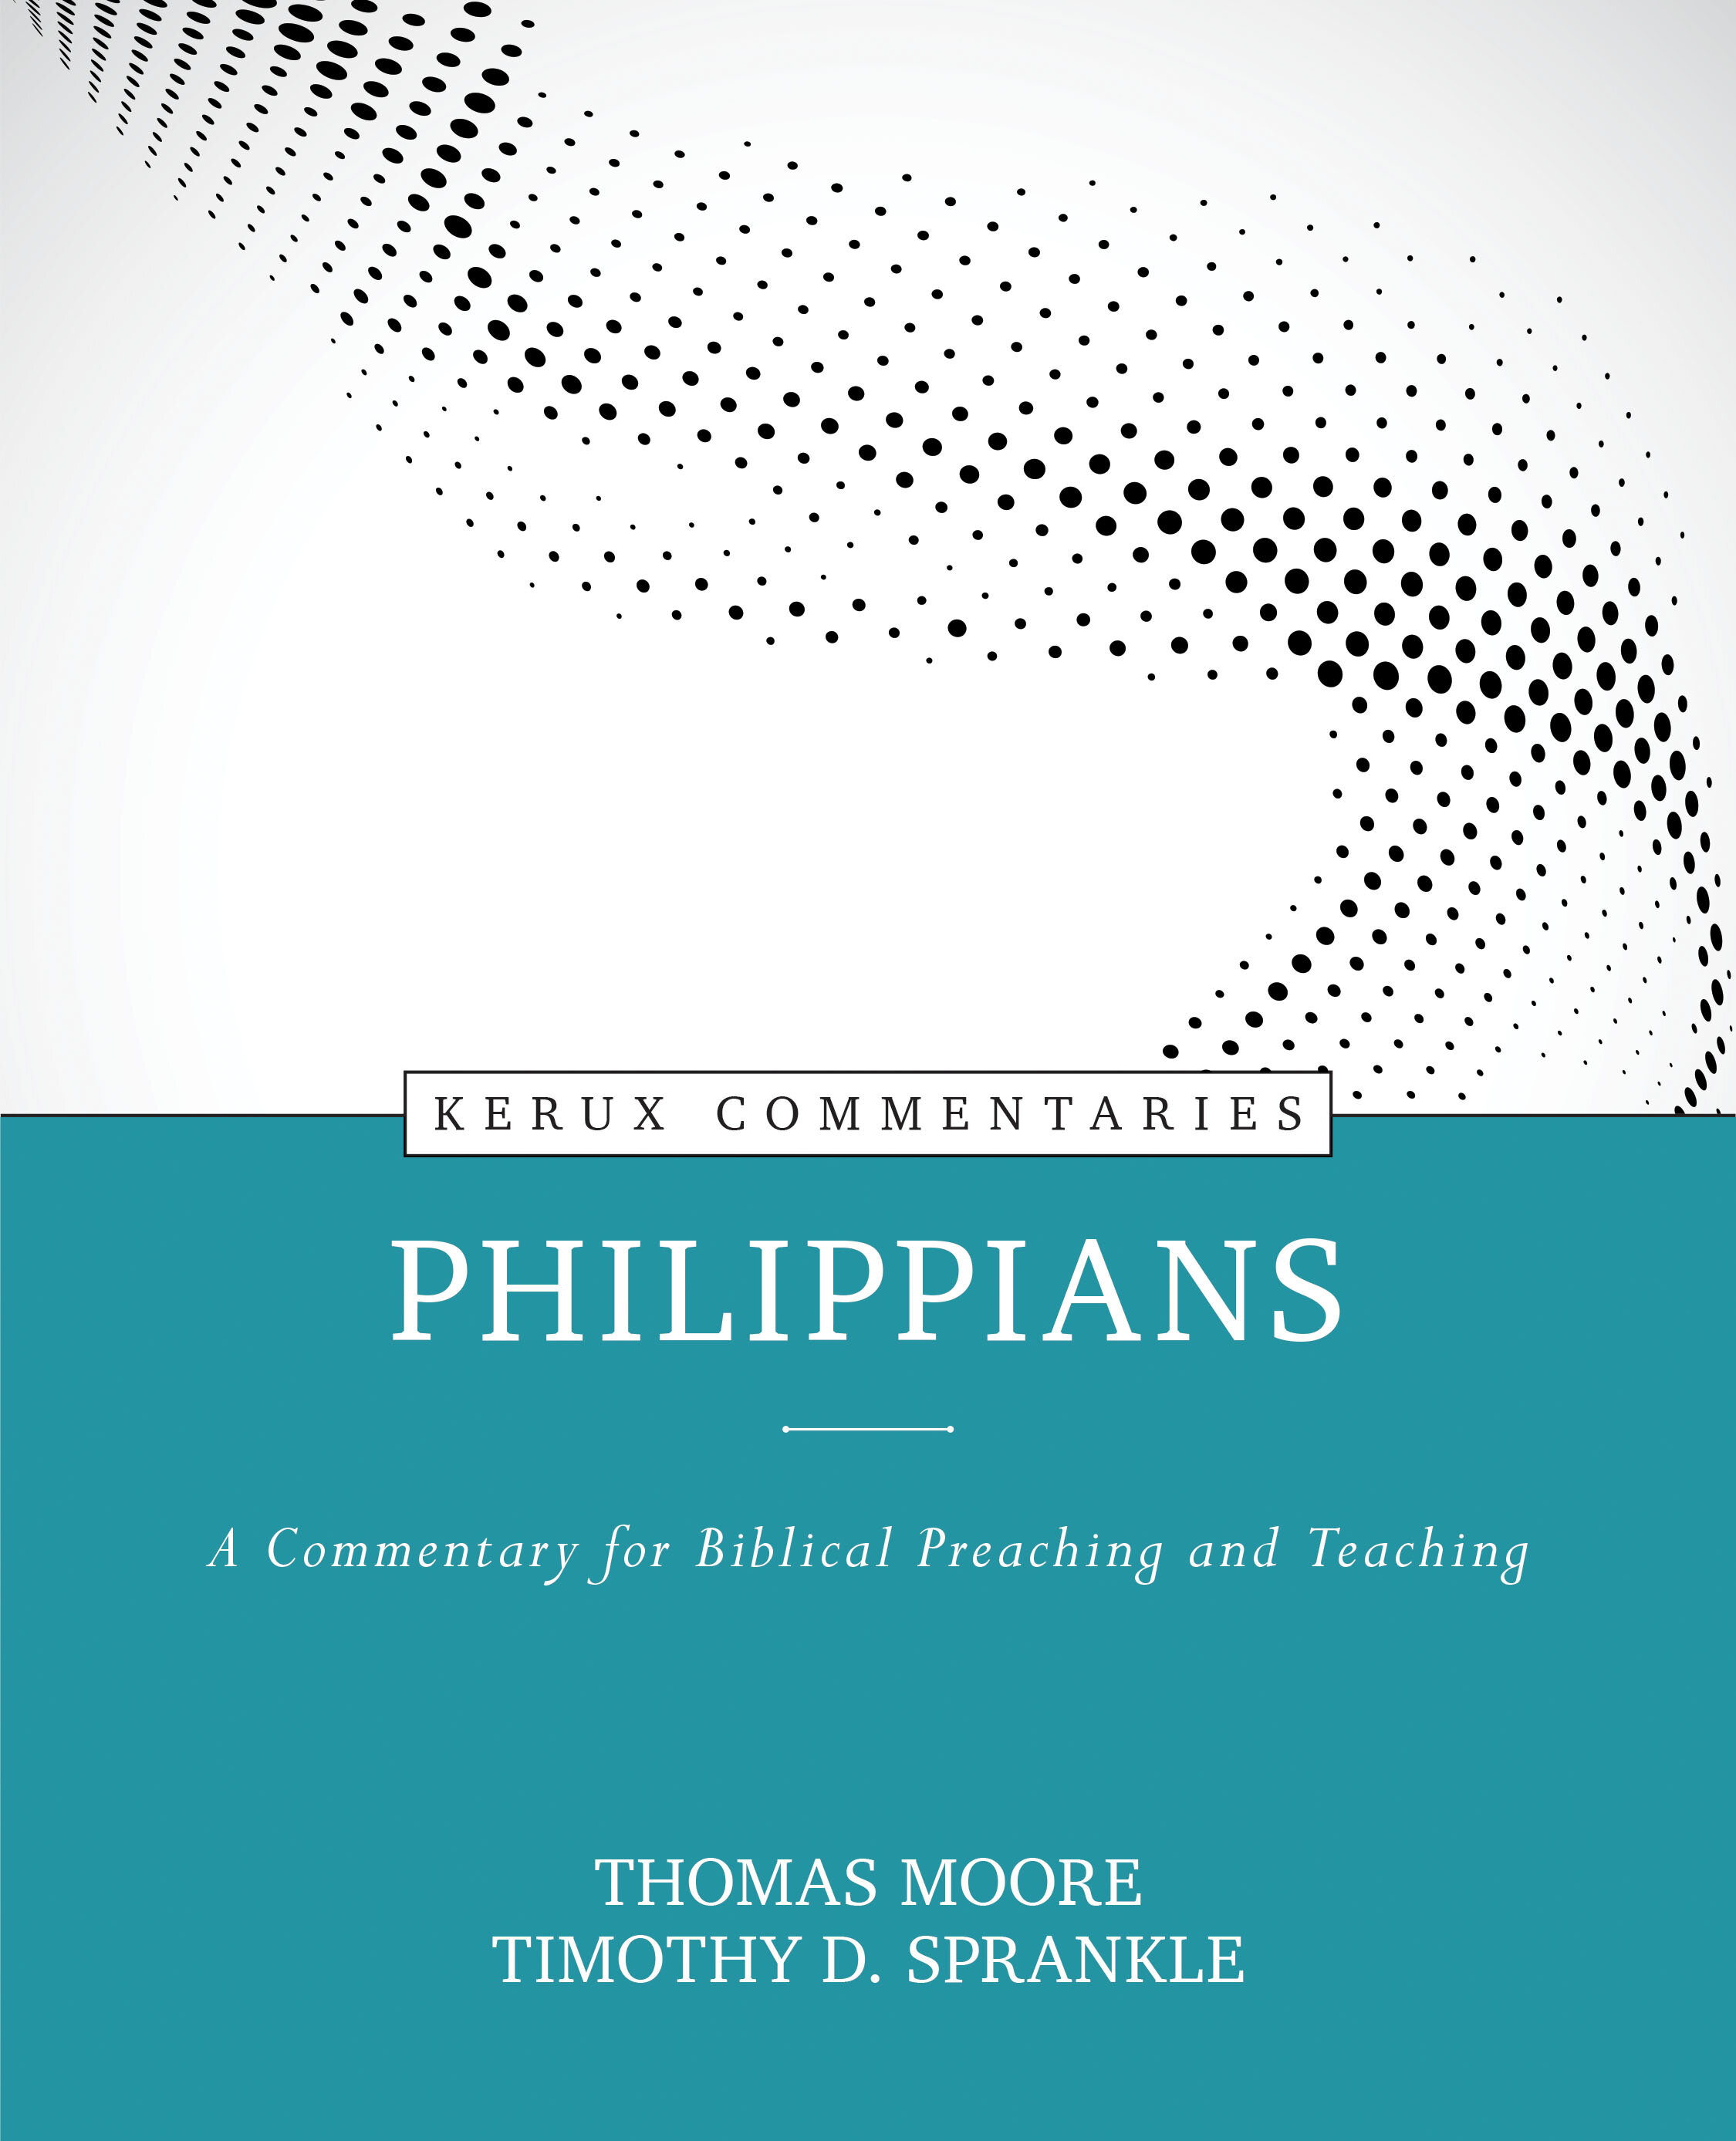 Philippians: A Commentary for Biblical Preaching and Teaching (Kerux Commentaries)